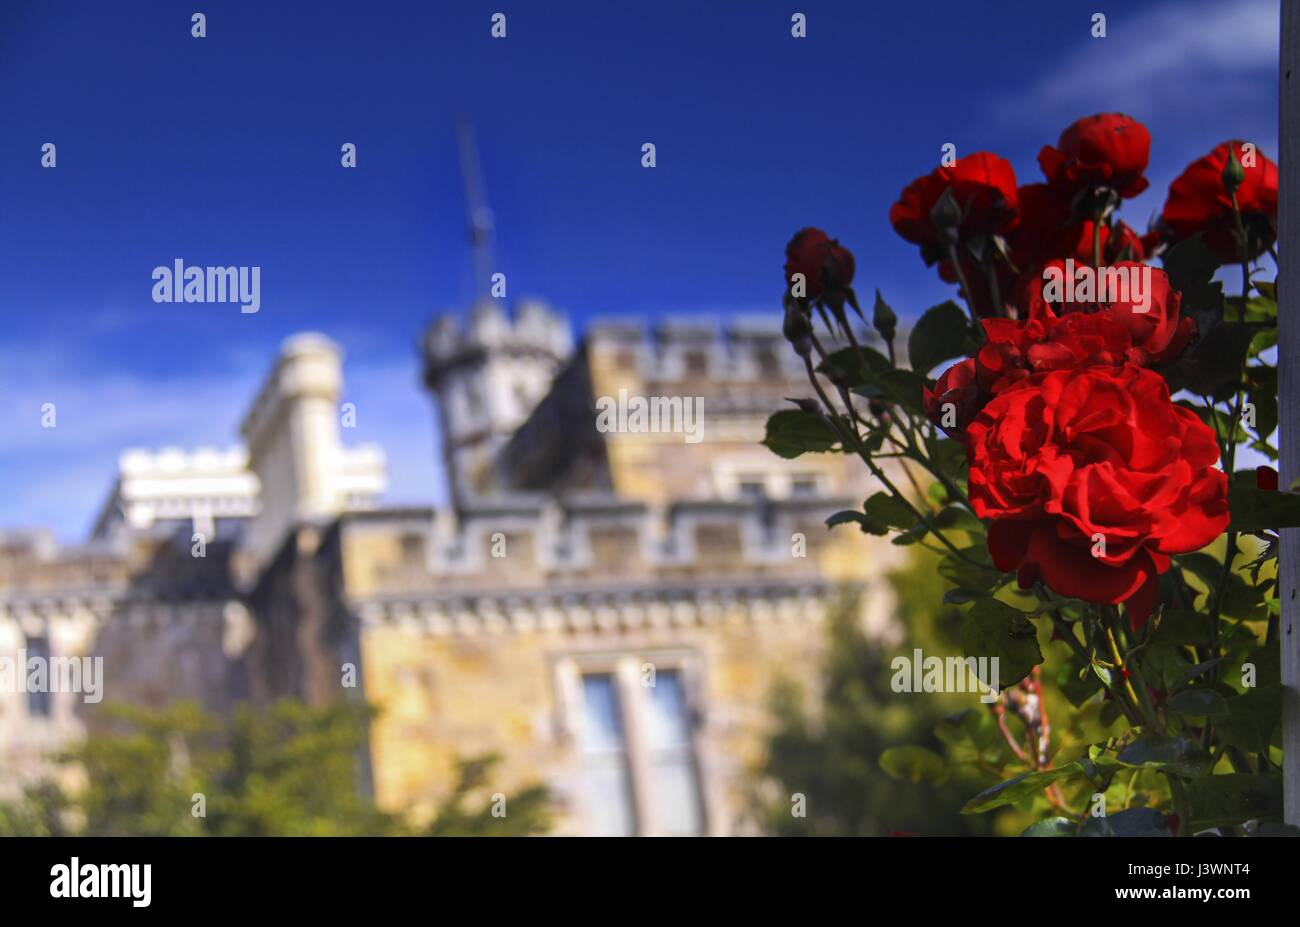 Red Roses in front of Larnach Castle on Otago Peninsula near Dunedin New Zealand - Stock Image